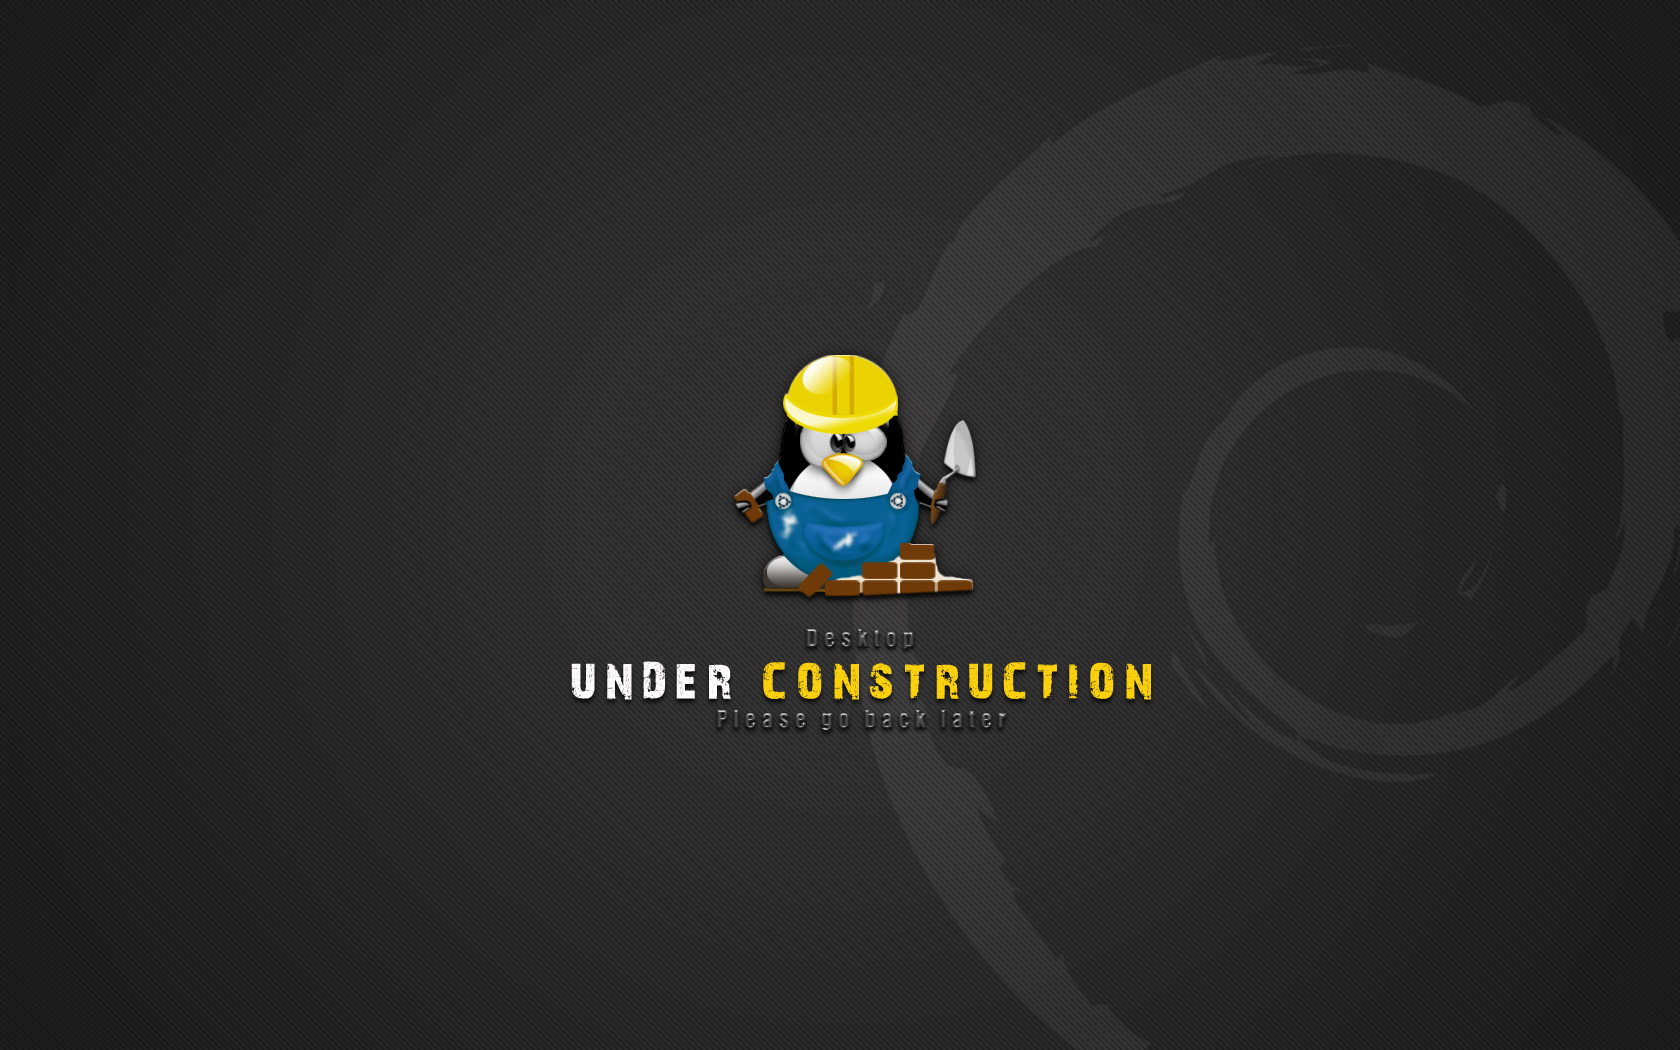 linux under construction